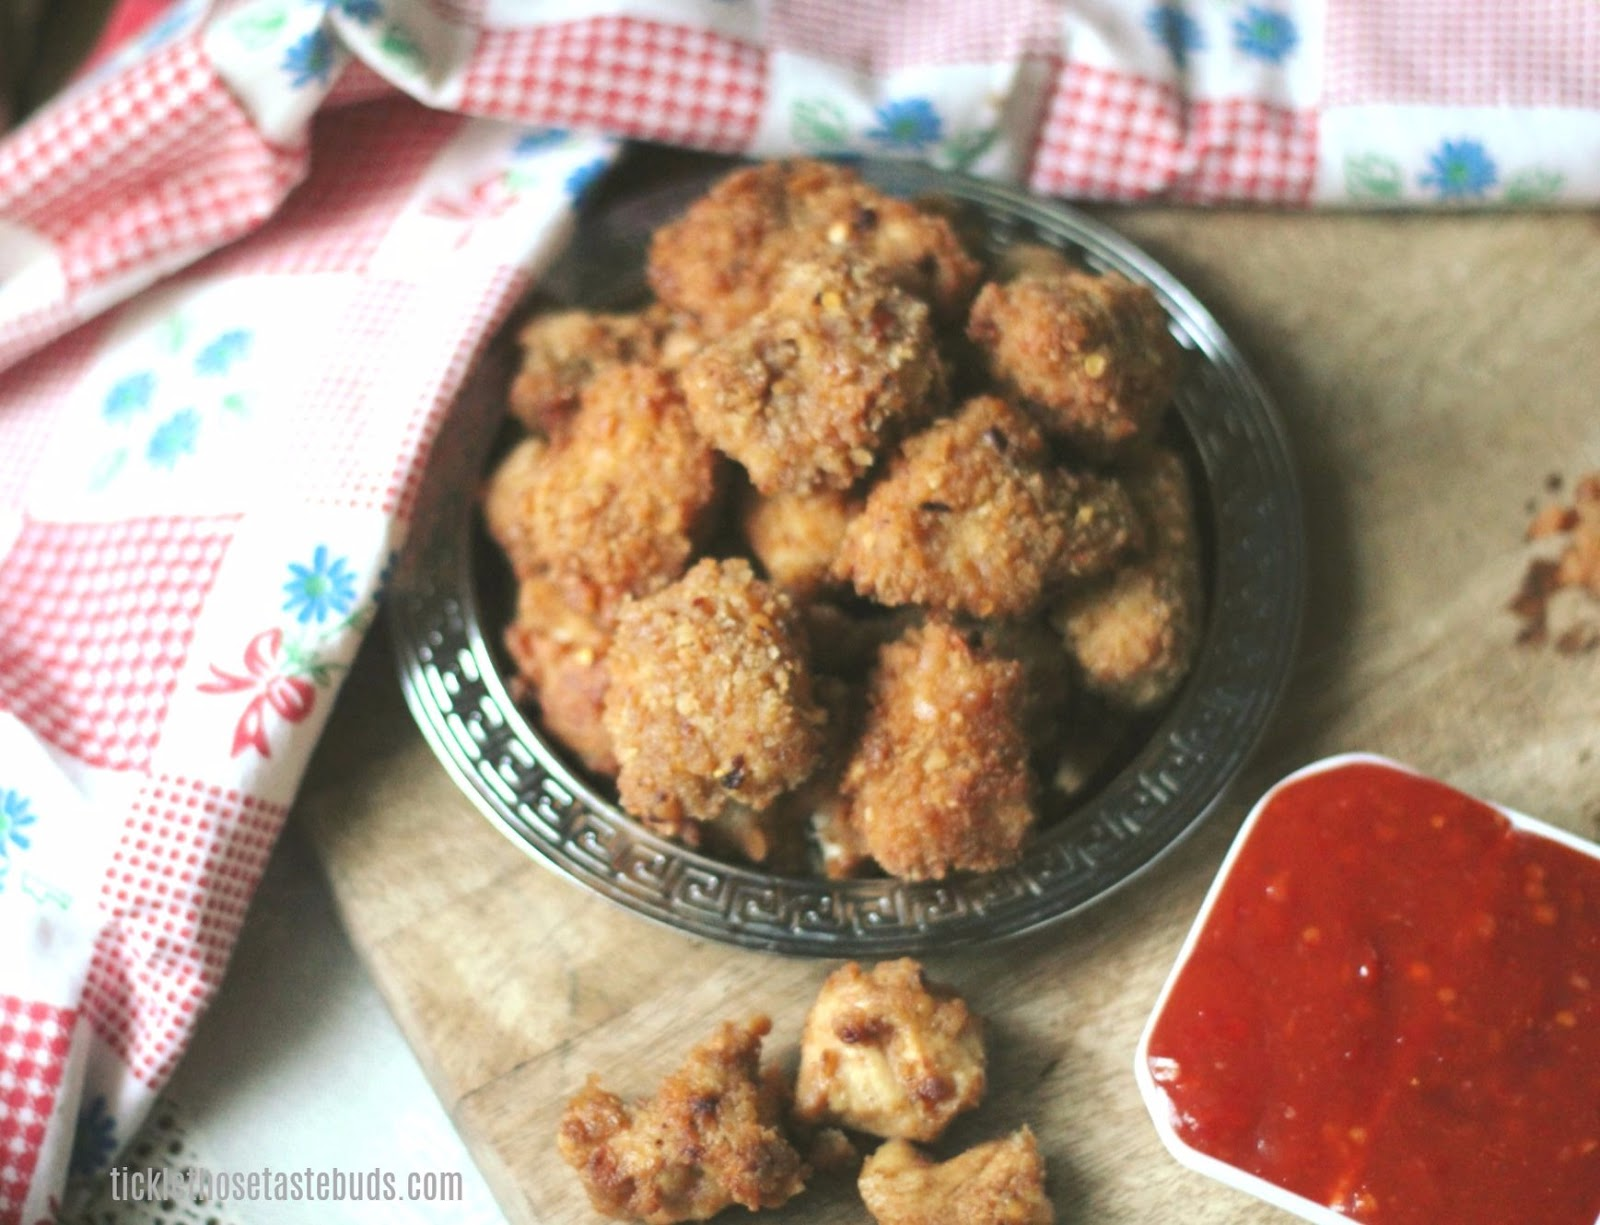 Fried-Crispy-Chicken-Bites-TTTB